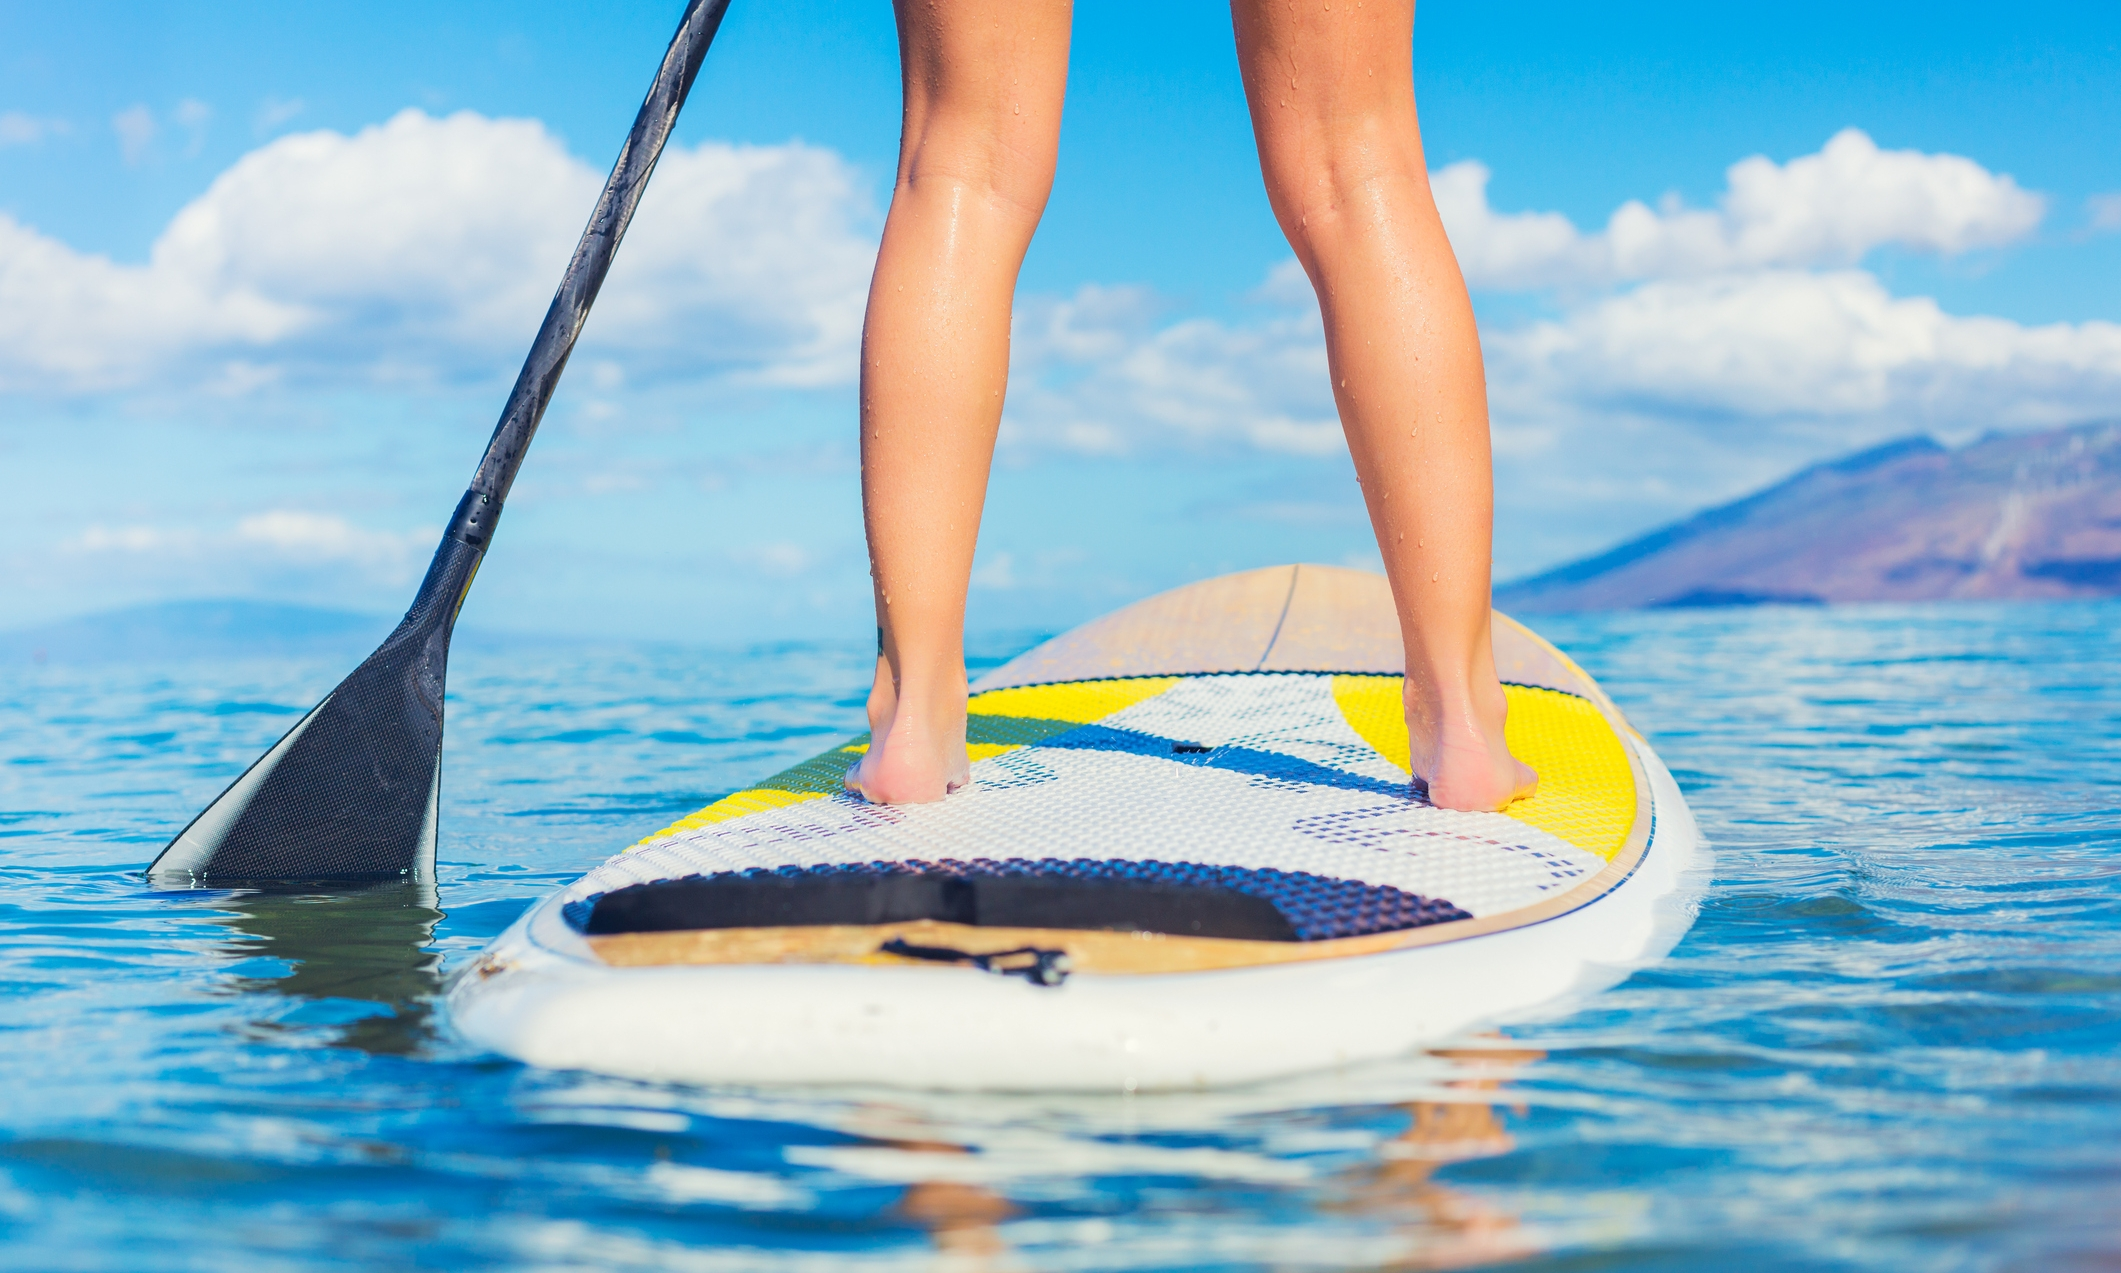 STORE - Buy Paddle Boards, Paddles and more online